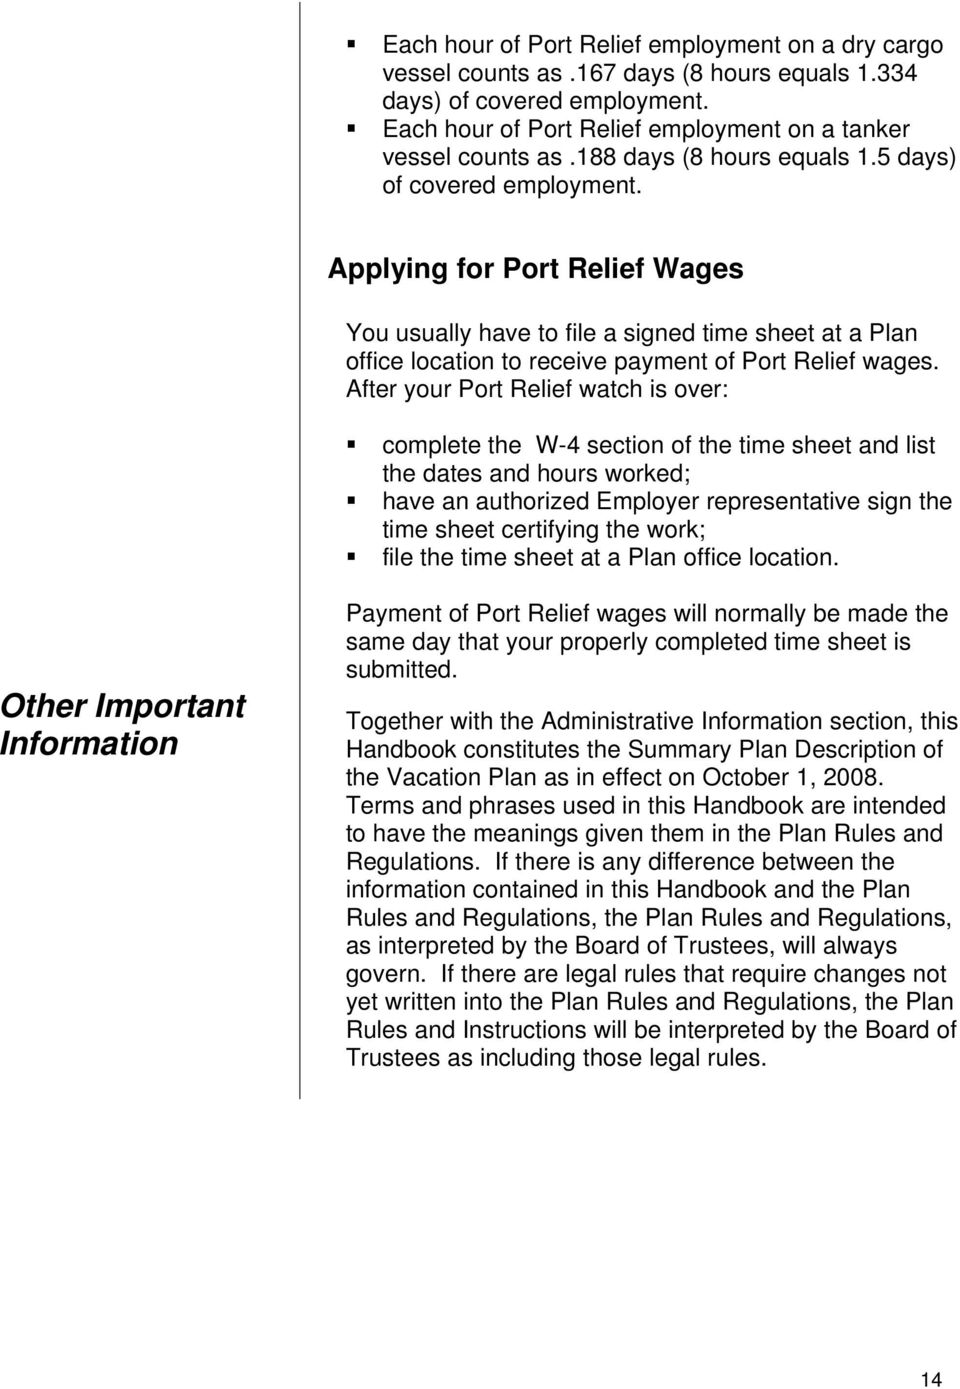 After your Port Relief watch is over: complete the W-4 section of the time sheet and list the dates and hours worked; have an authorized Employer representative sign the time sheet certifying the